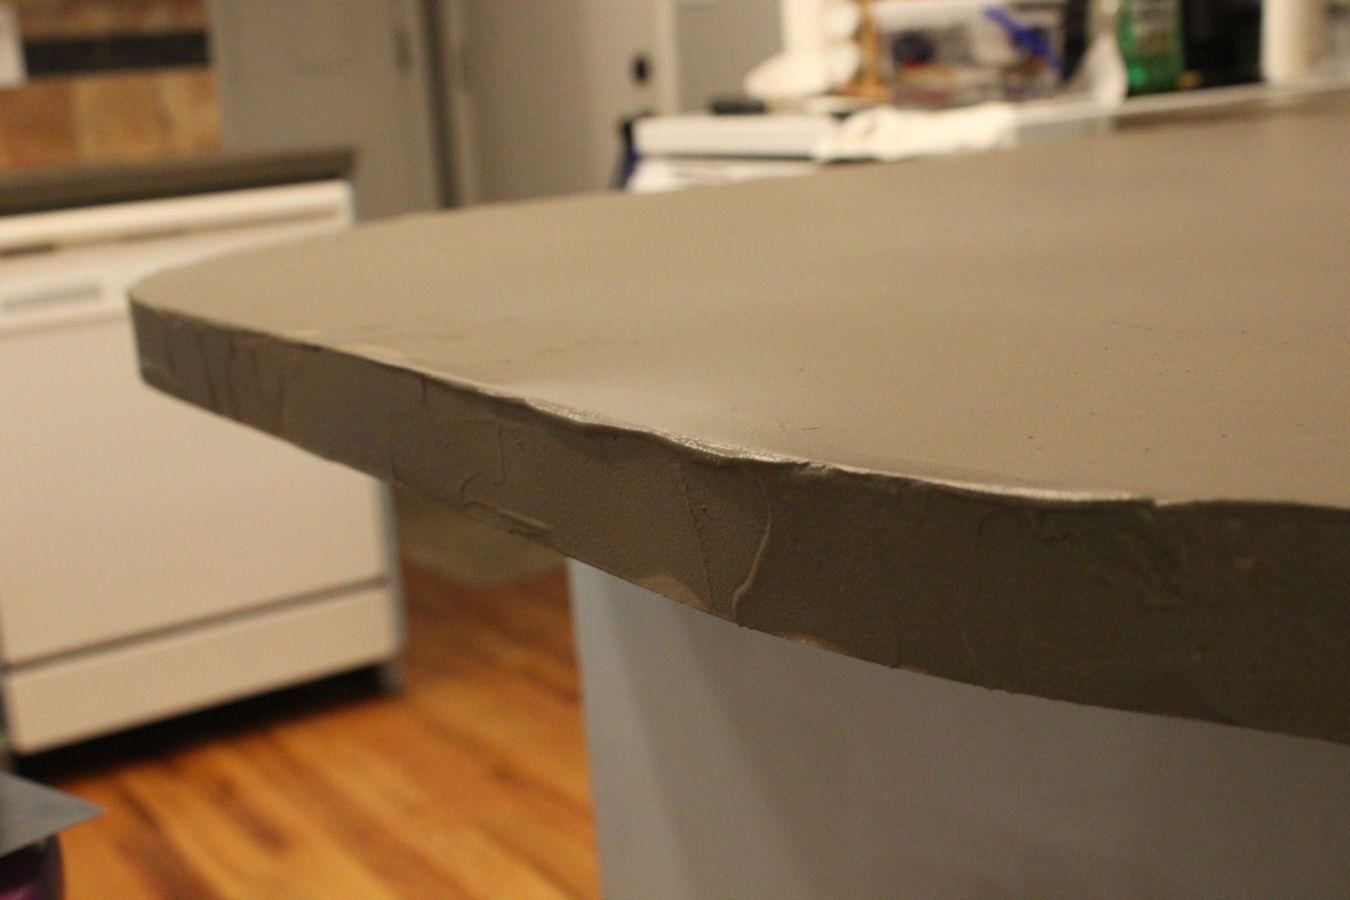 Making Your Own Concrete Countertop Diy Concrete Kitchen Countertops A Step By Step Tutorial